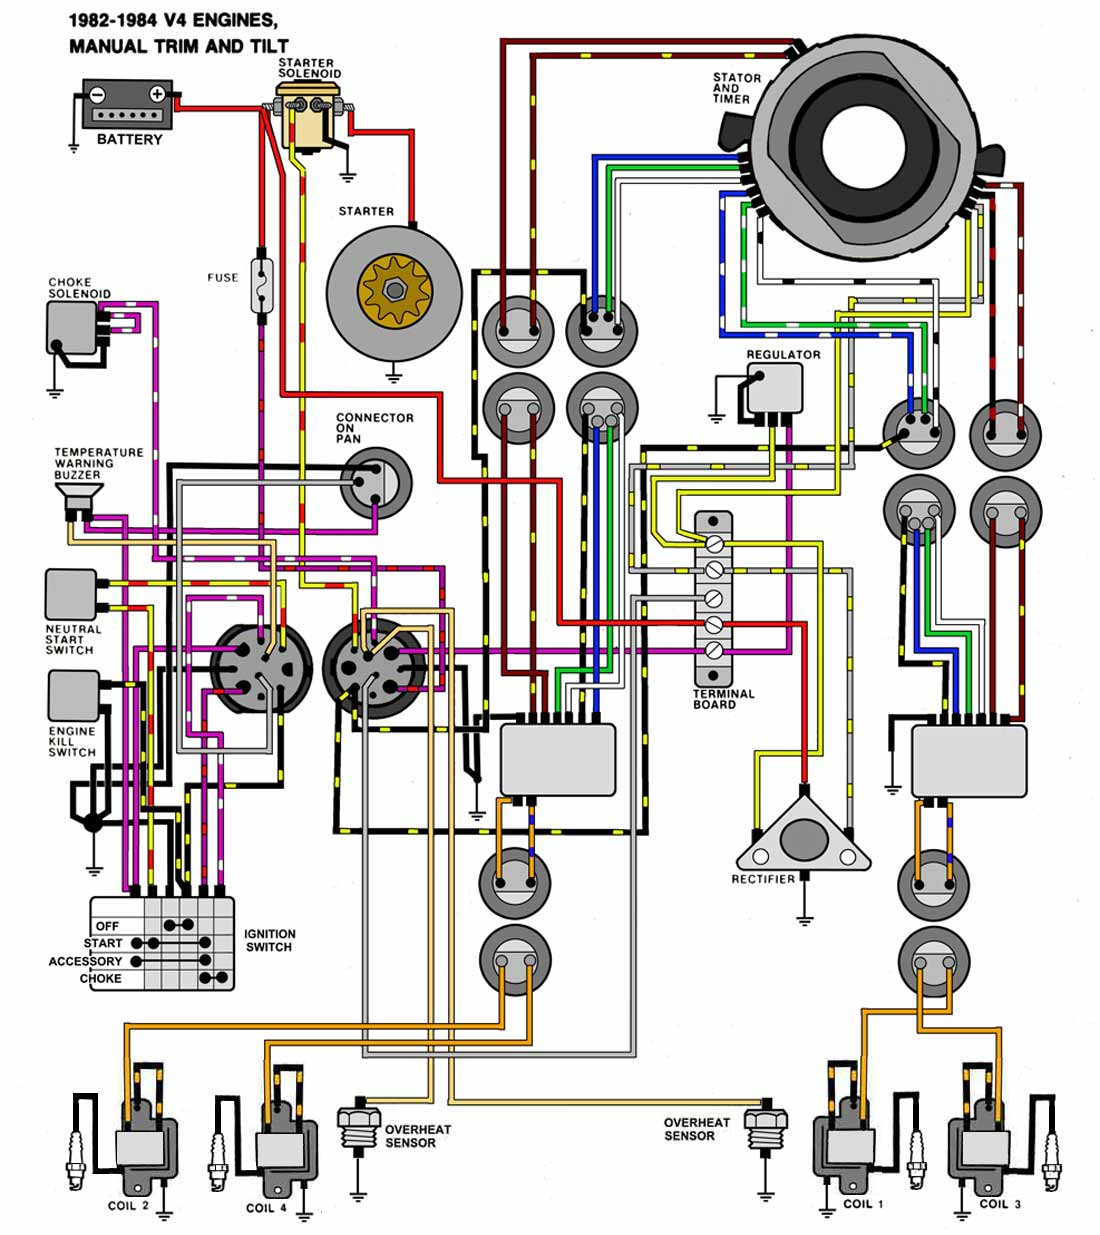 johnson outboard tilt trim diagram 11 4 malawi24 de \u2022 Johnson Outboard Key Switch evinrude johnson outboard wiring diagrams mastertech marine rh maxrules com 150 johnson trim tilt diagram 150 johnson trim tilt diagram